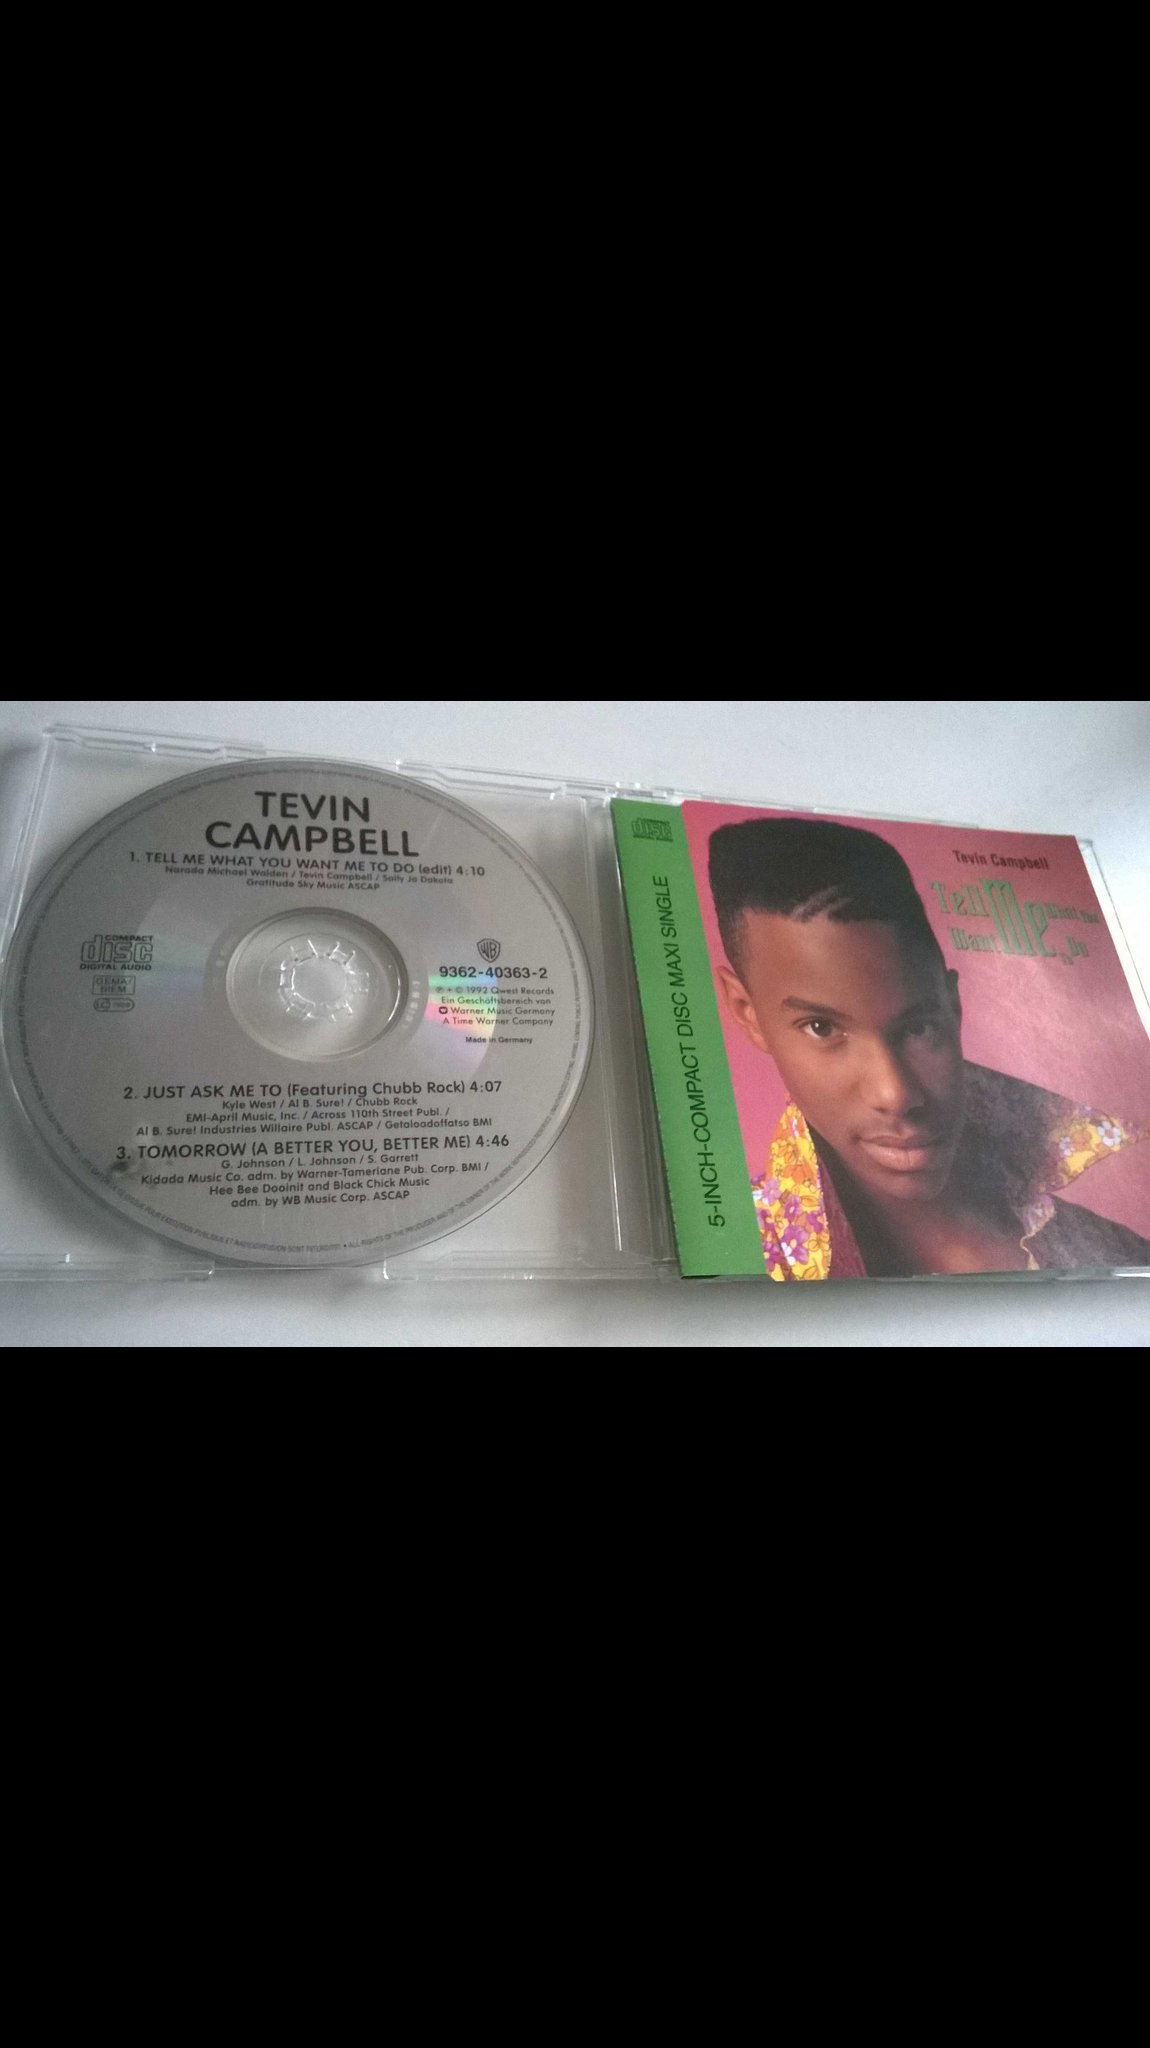 Tevin Campbell - Tell Me What You Want Me To Do, CD, Single